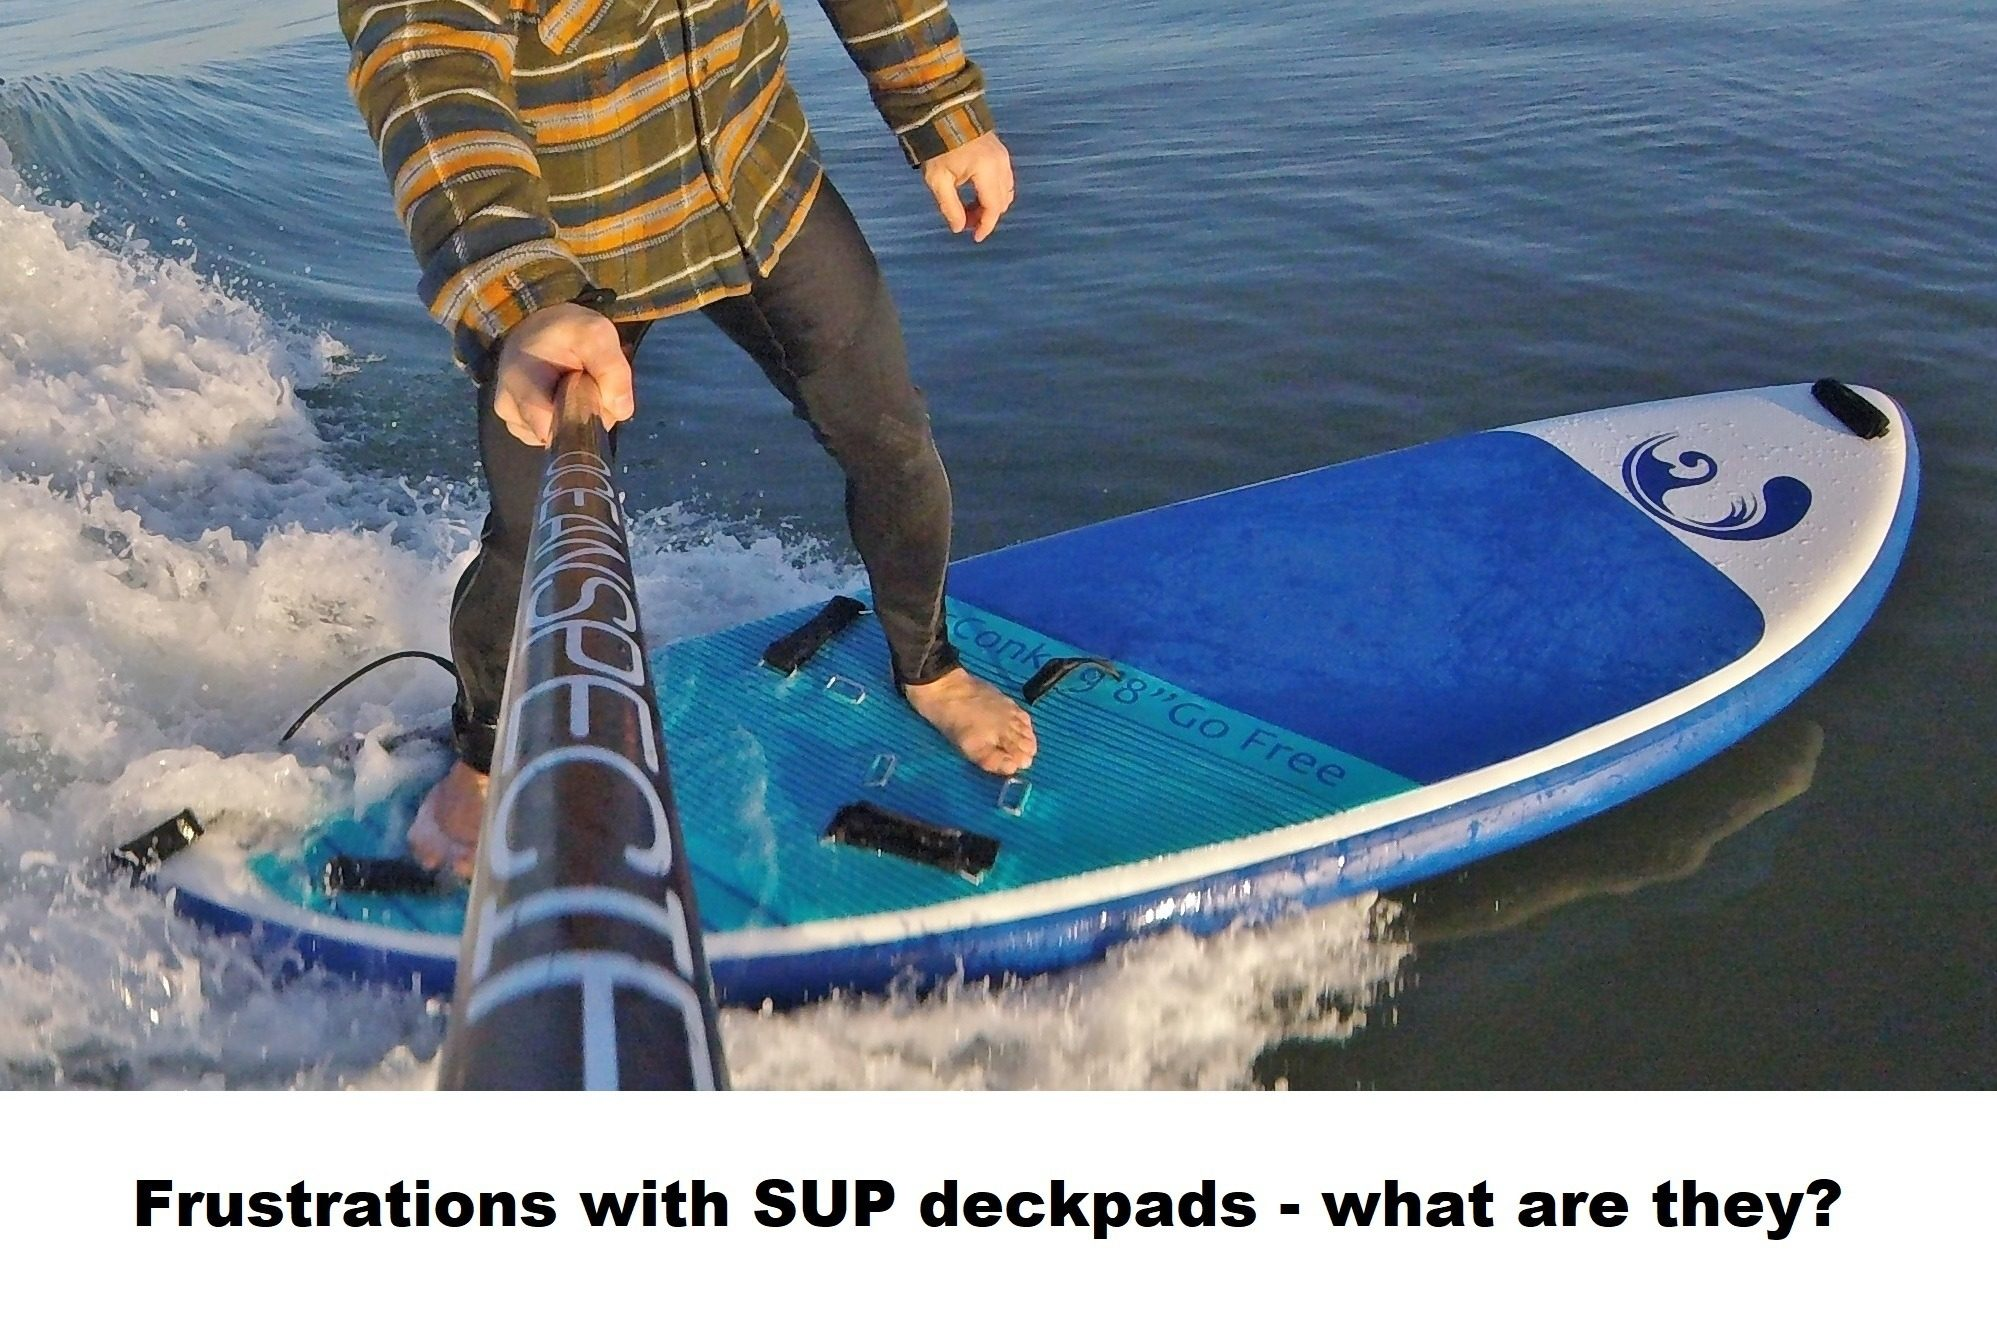 Frustrations with SUP deckpads – what are they?